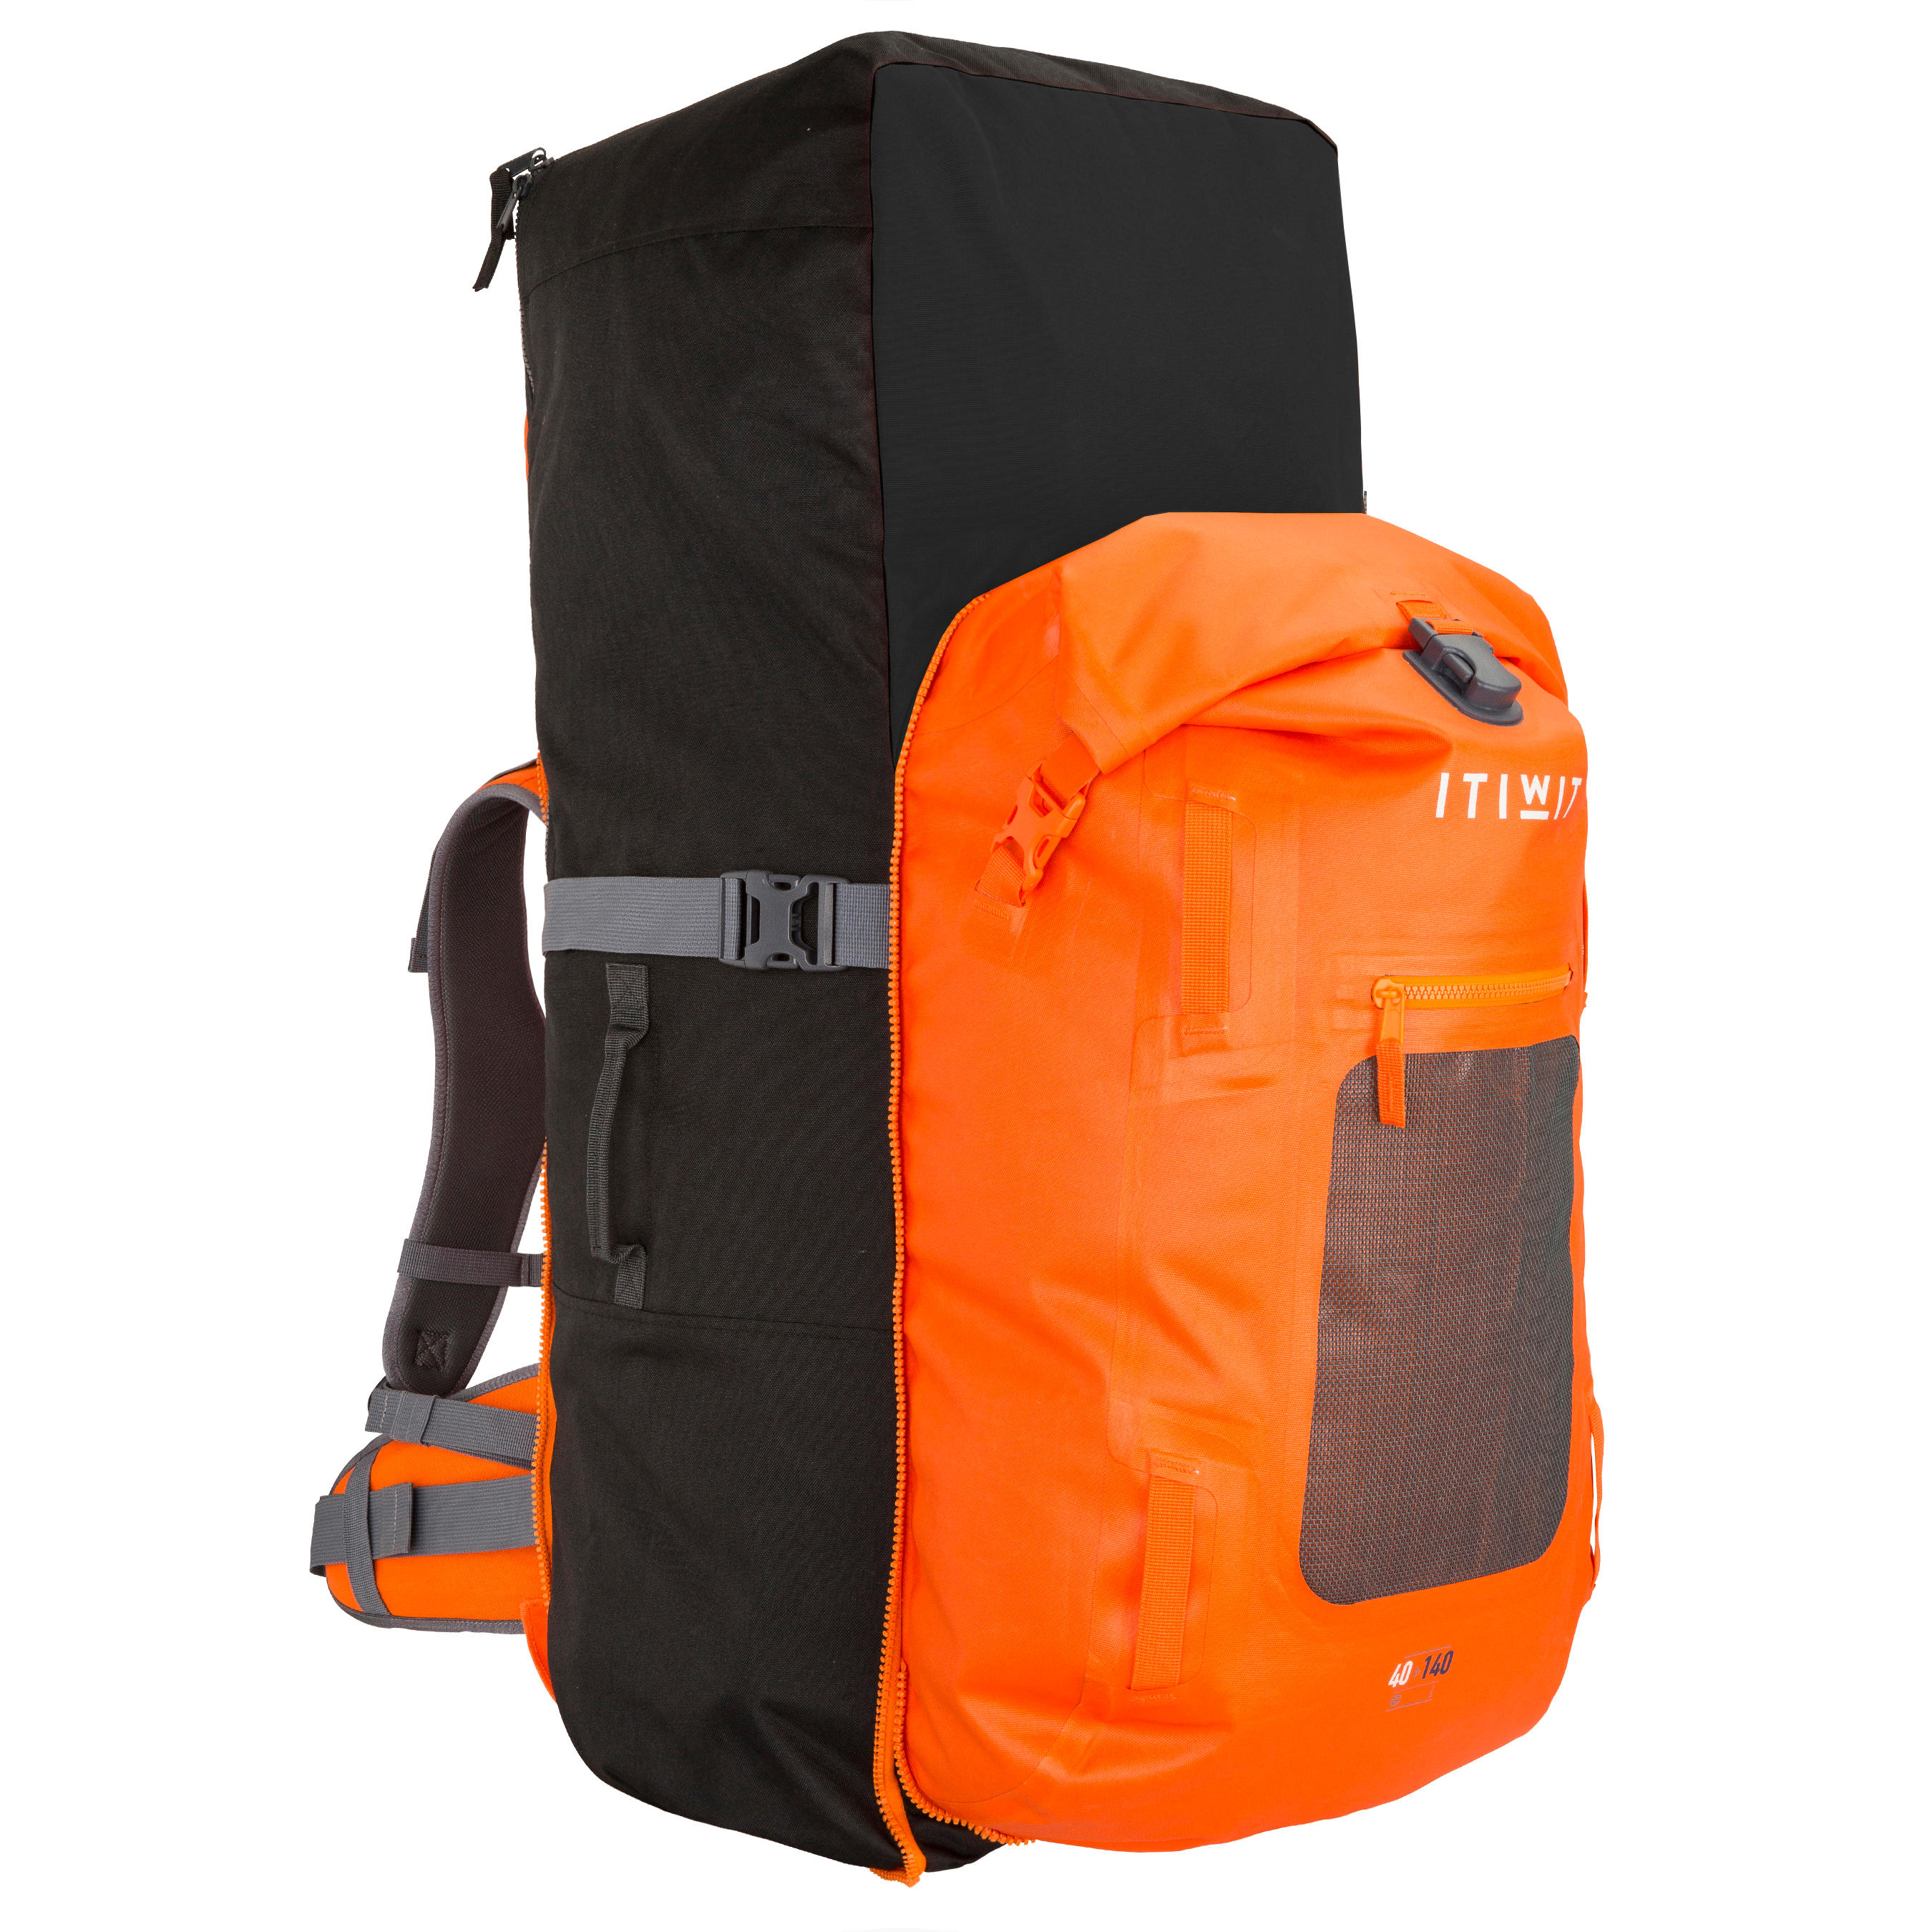 500 Touring Stand Up Paddle Watertight Backpack 100L + 40L - Orange